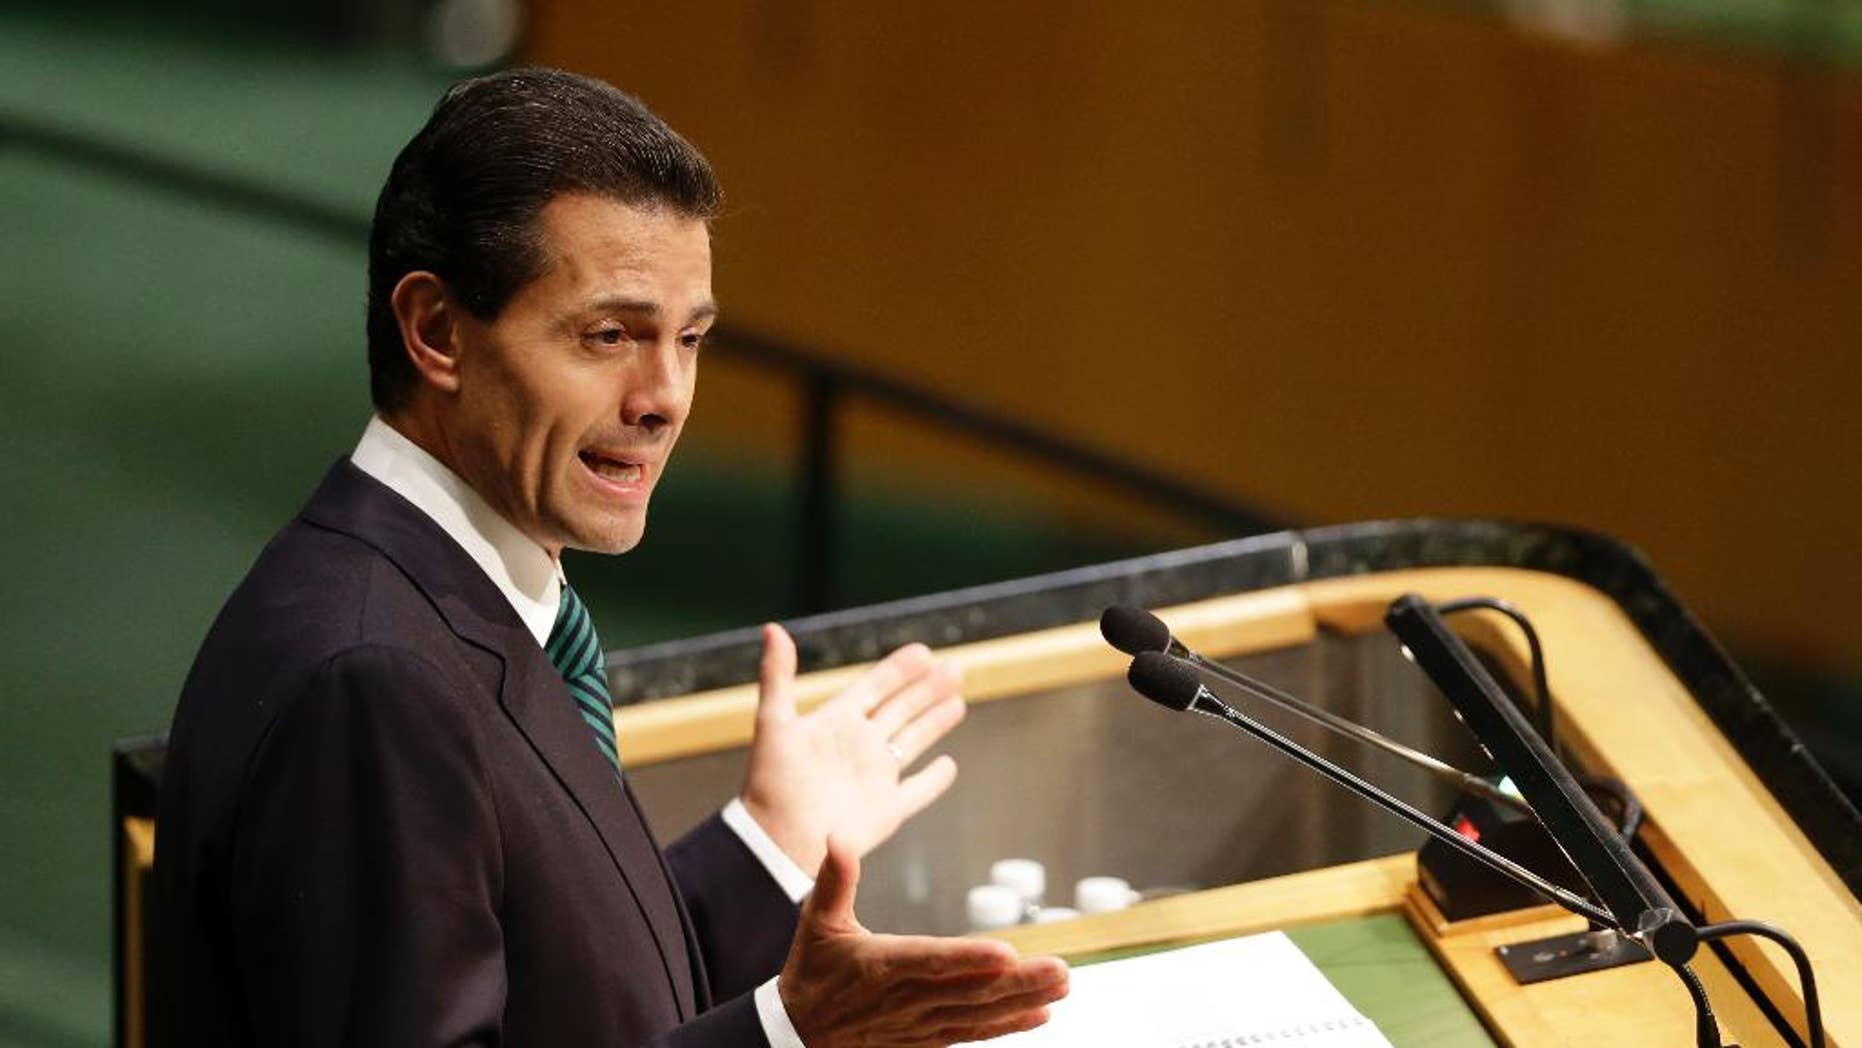 FILE - In this Sept. 27, 2015, file photo, Mexican President Enrique Pena Nieto addresses the 2015 Sustainable Development Summit, at United Nations headquarters. Pena Nieto said Monday, Nov. 9, 2015, that he opposes any eventual legalization of marijuana, five days after the Supreme Court ruled in favor of four people who wanted to grow pot for personal use.(AP Photo/Seth Wenig, File)